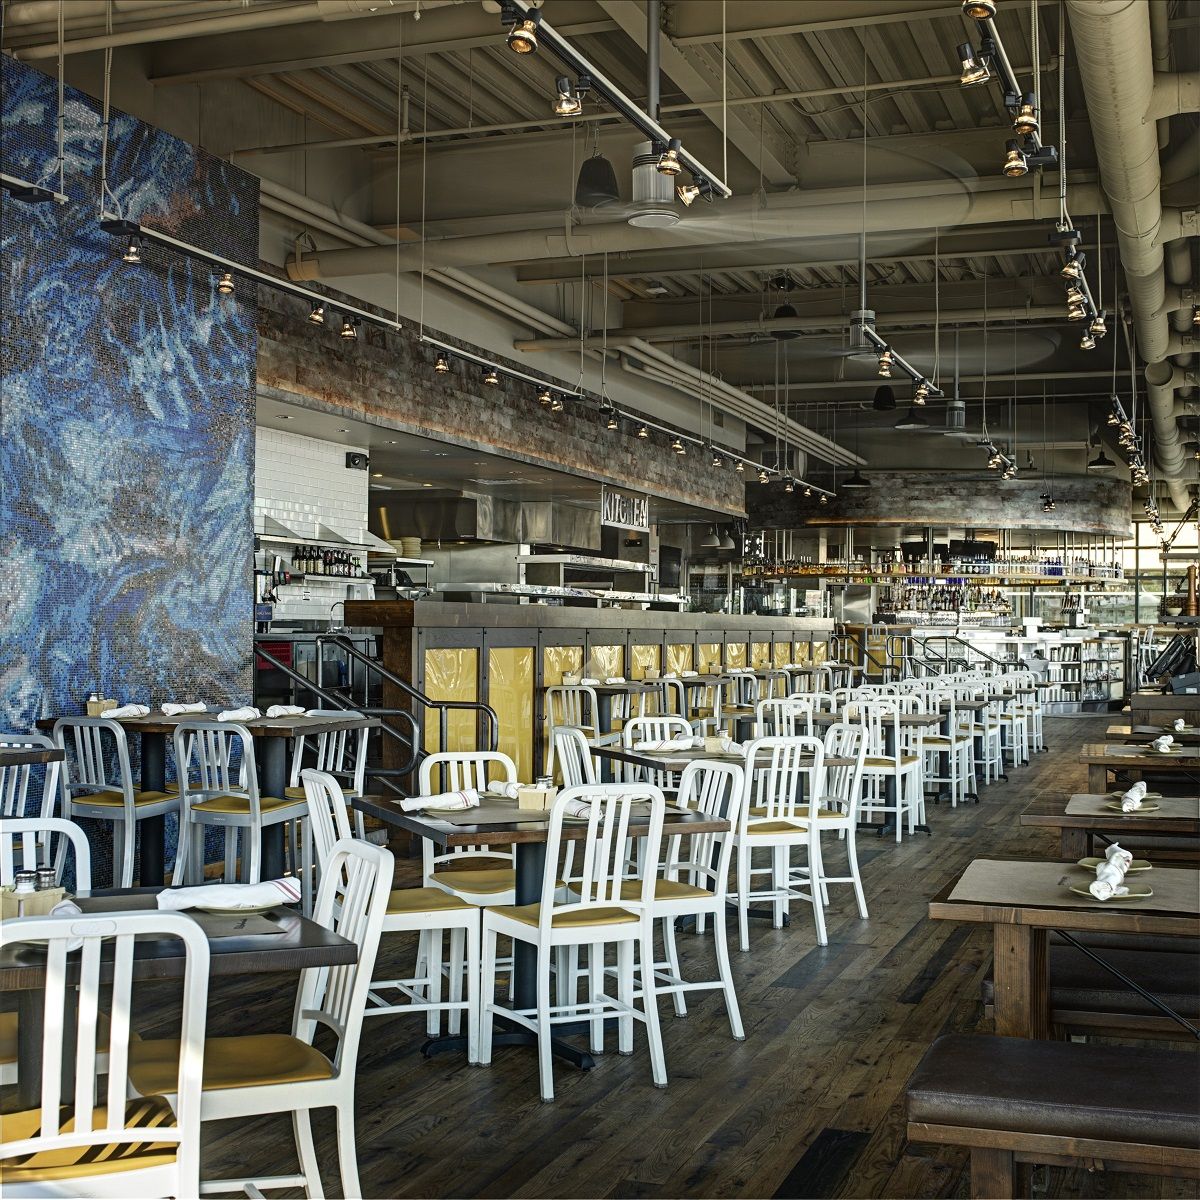 Best cuisine in the seaport district jack conway blog for Best fish restaurants in boston